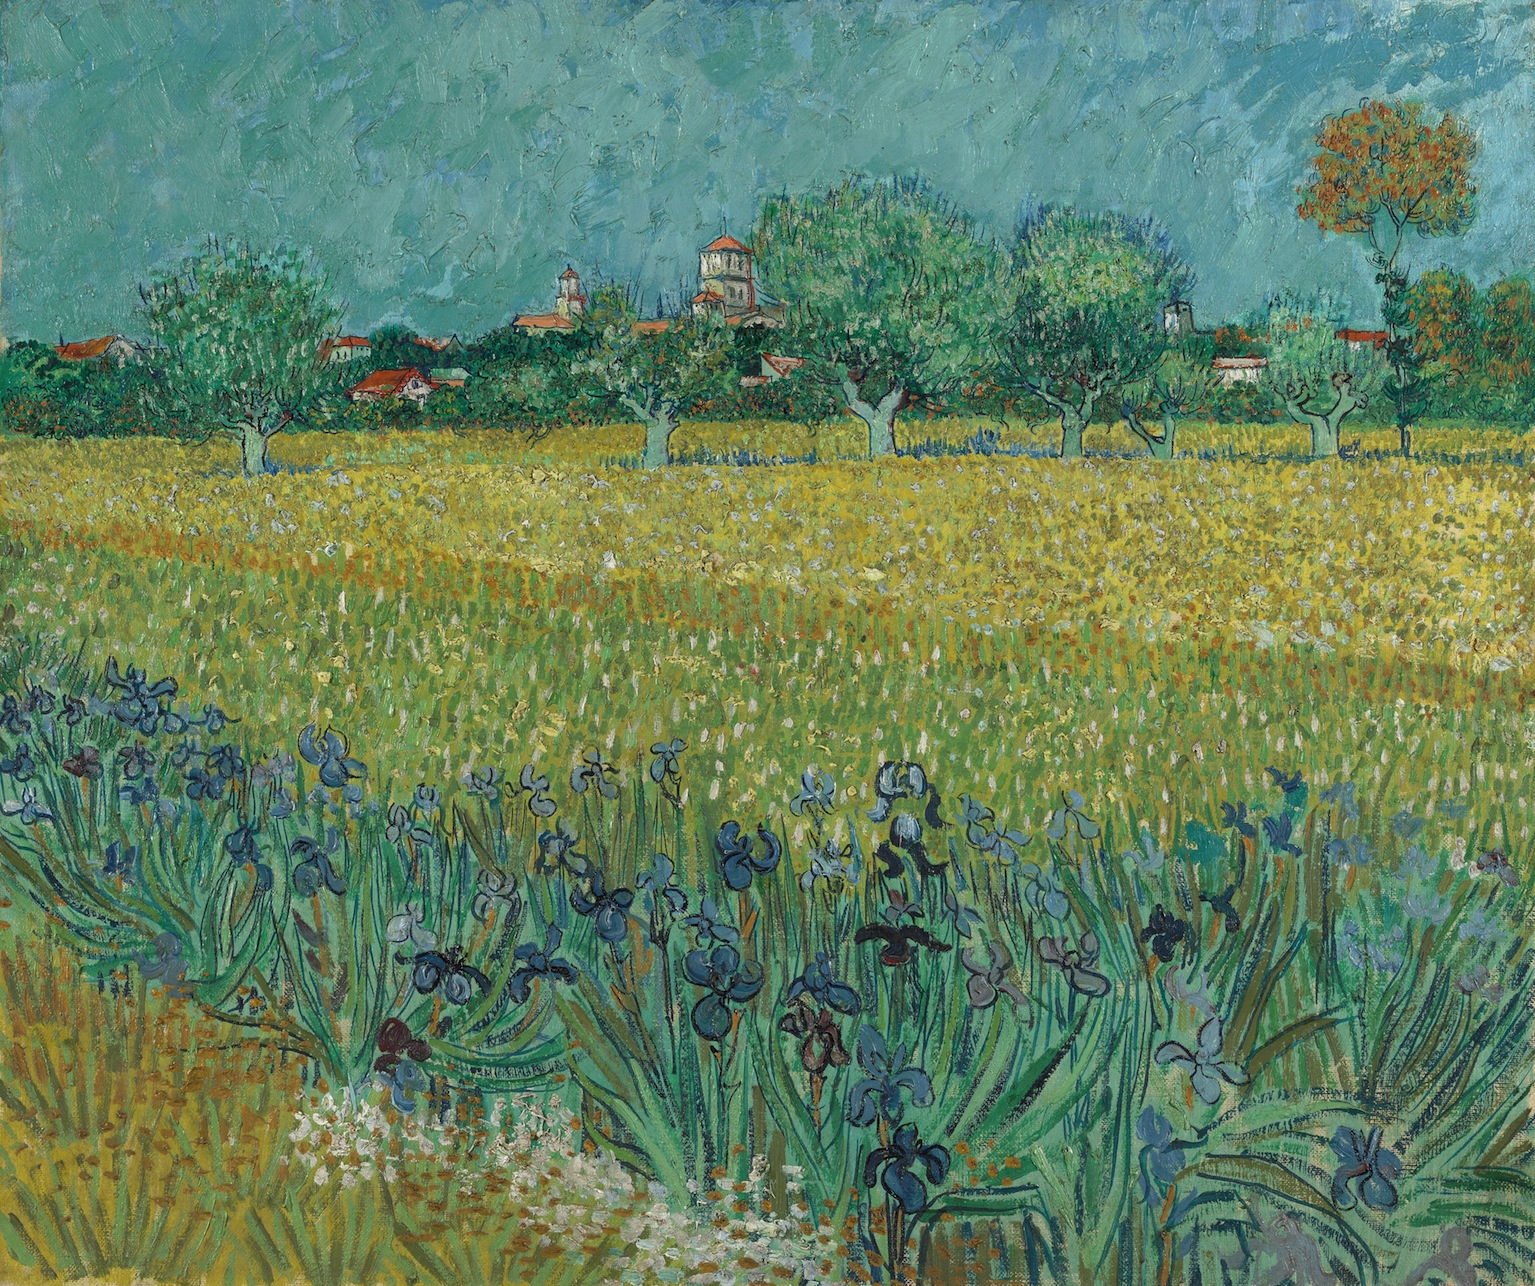 Toulon Arles The Provence Post Van Gogh Show Opens In Arles May 14